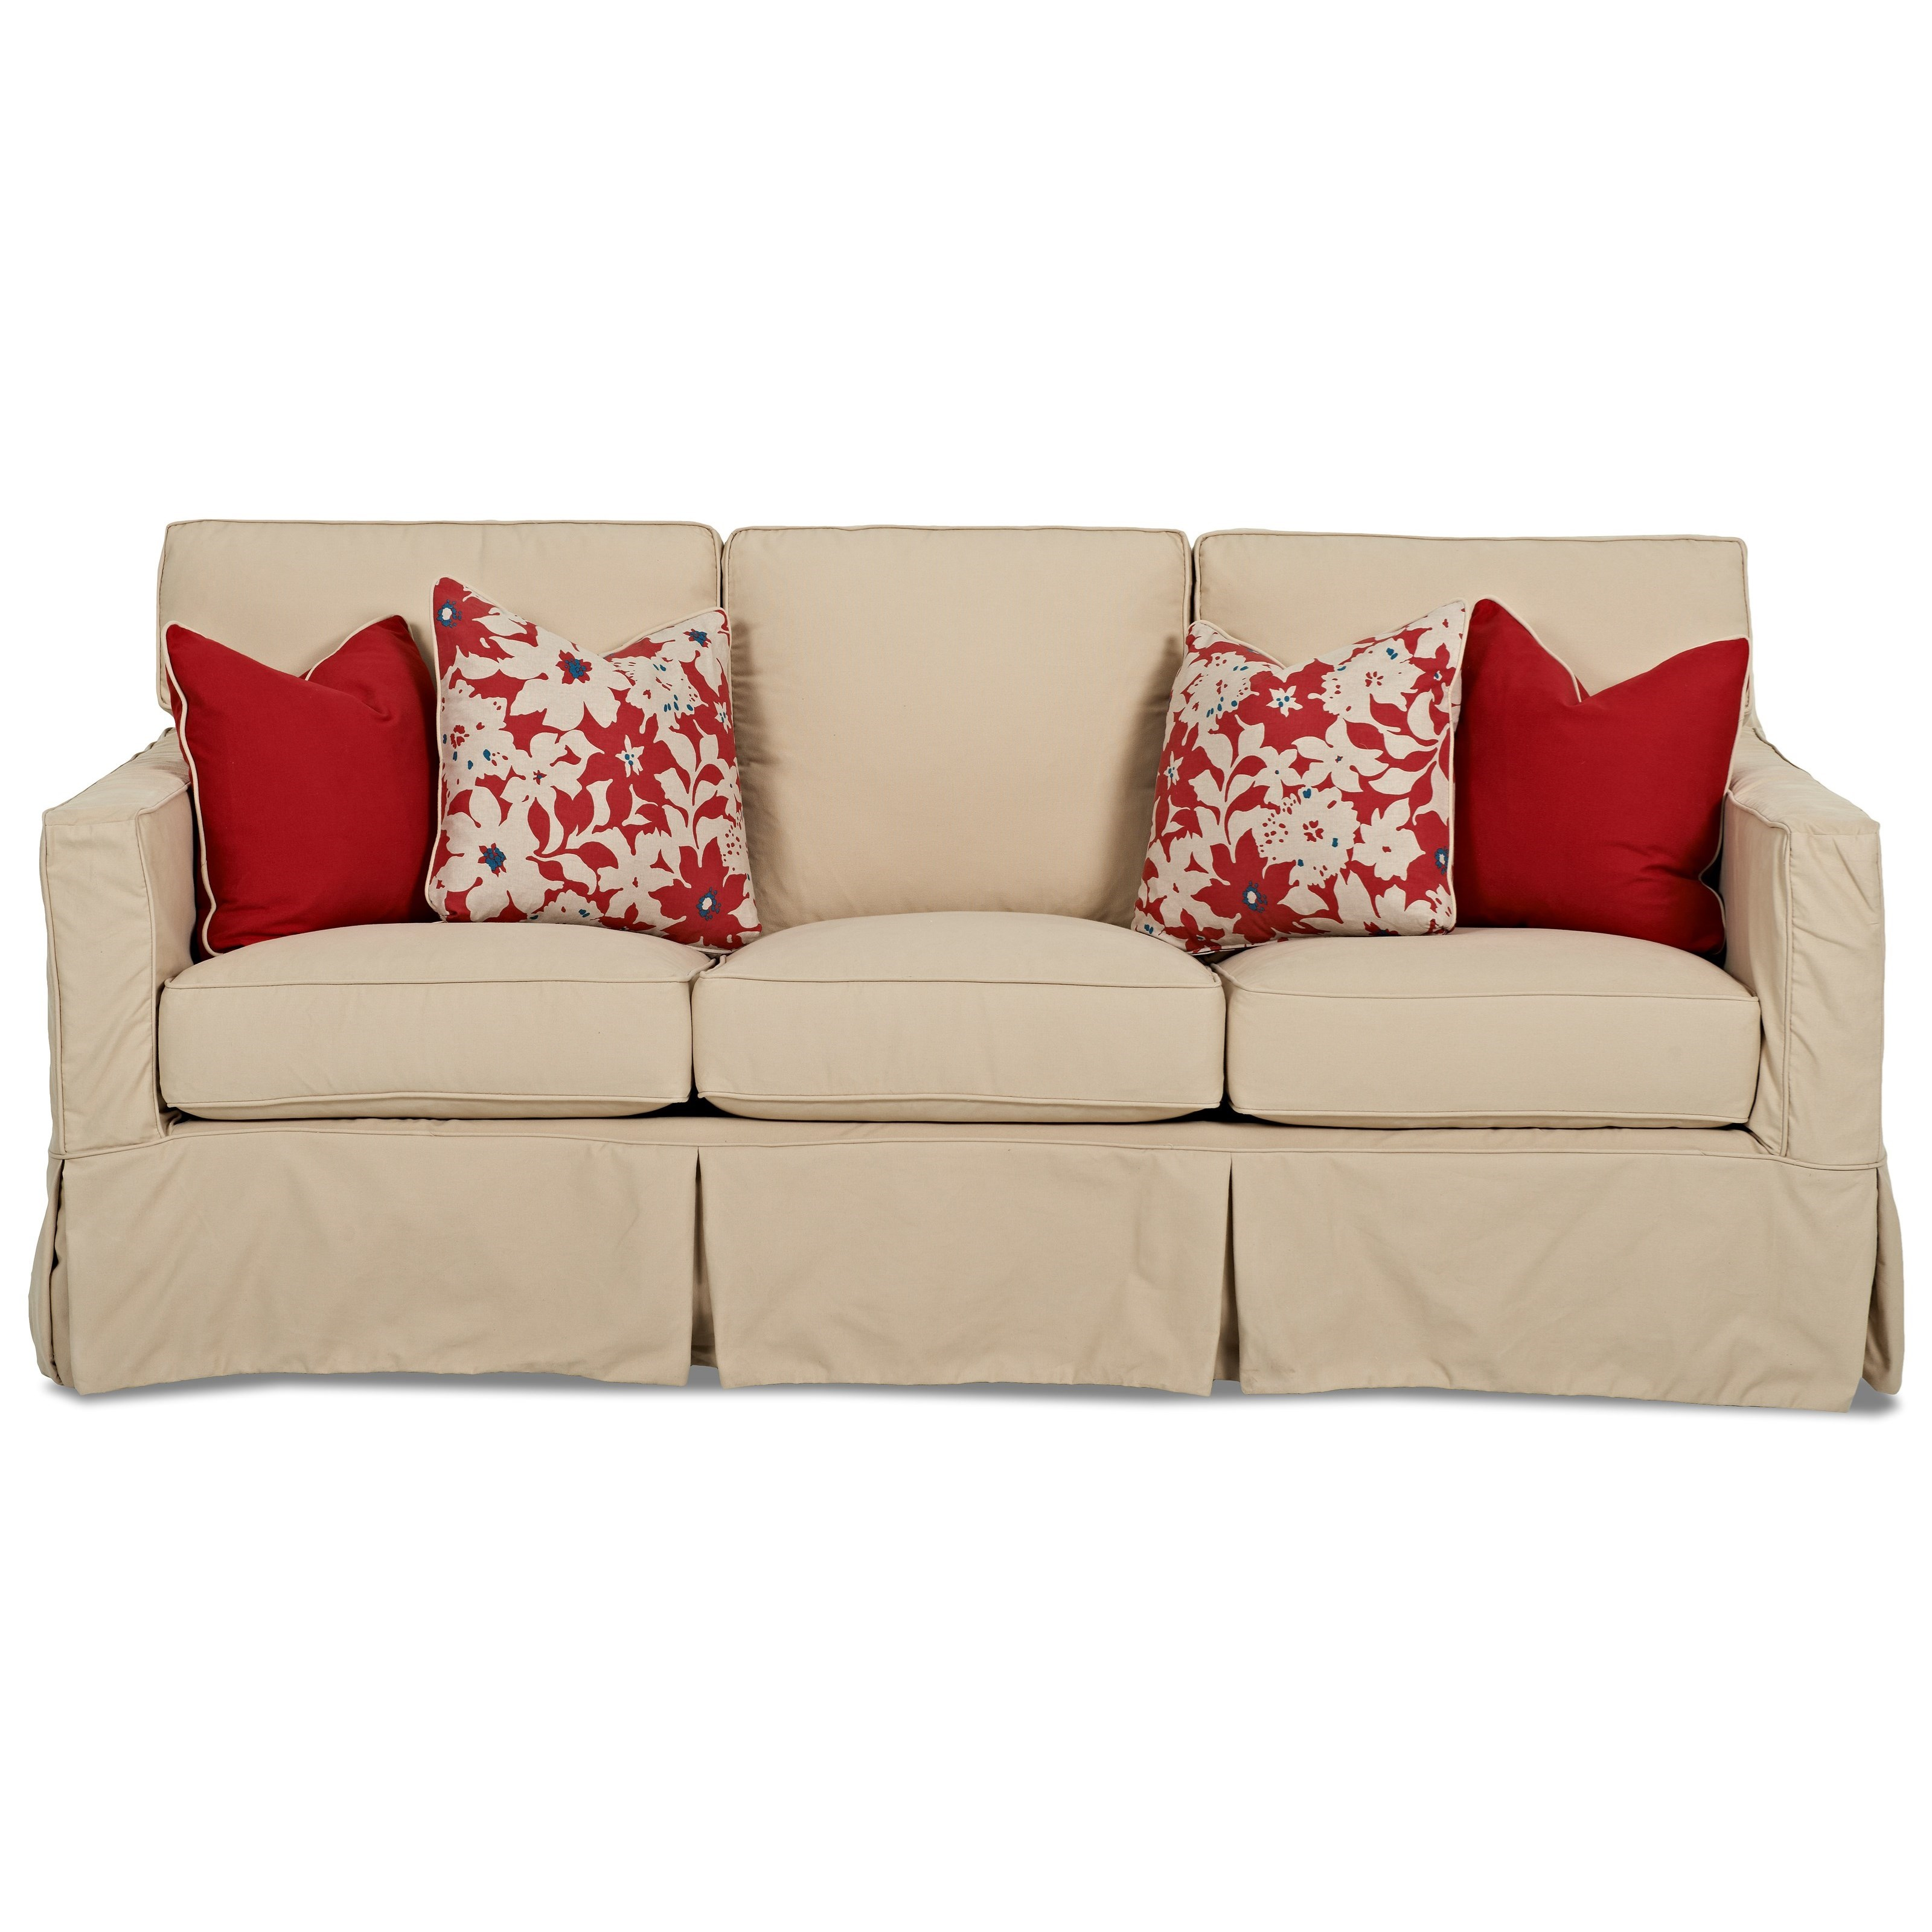 Extra Sofa with Slipcover by Klaussner